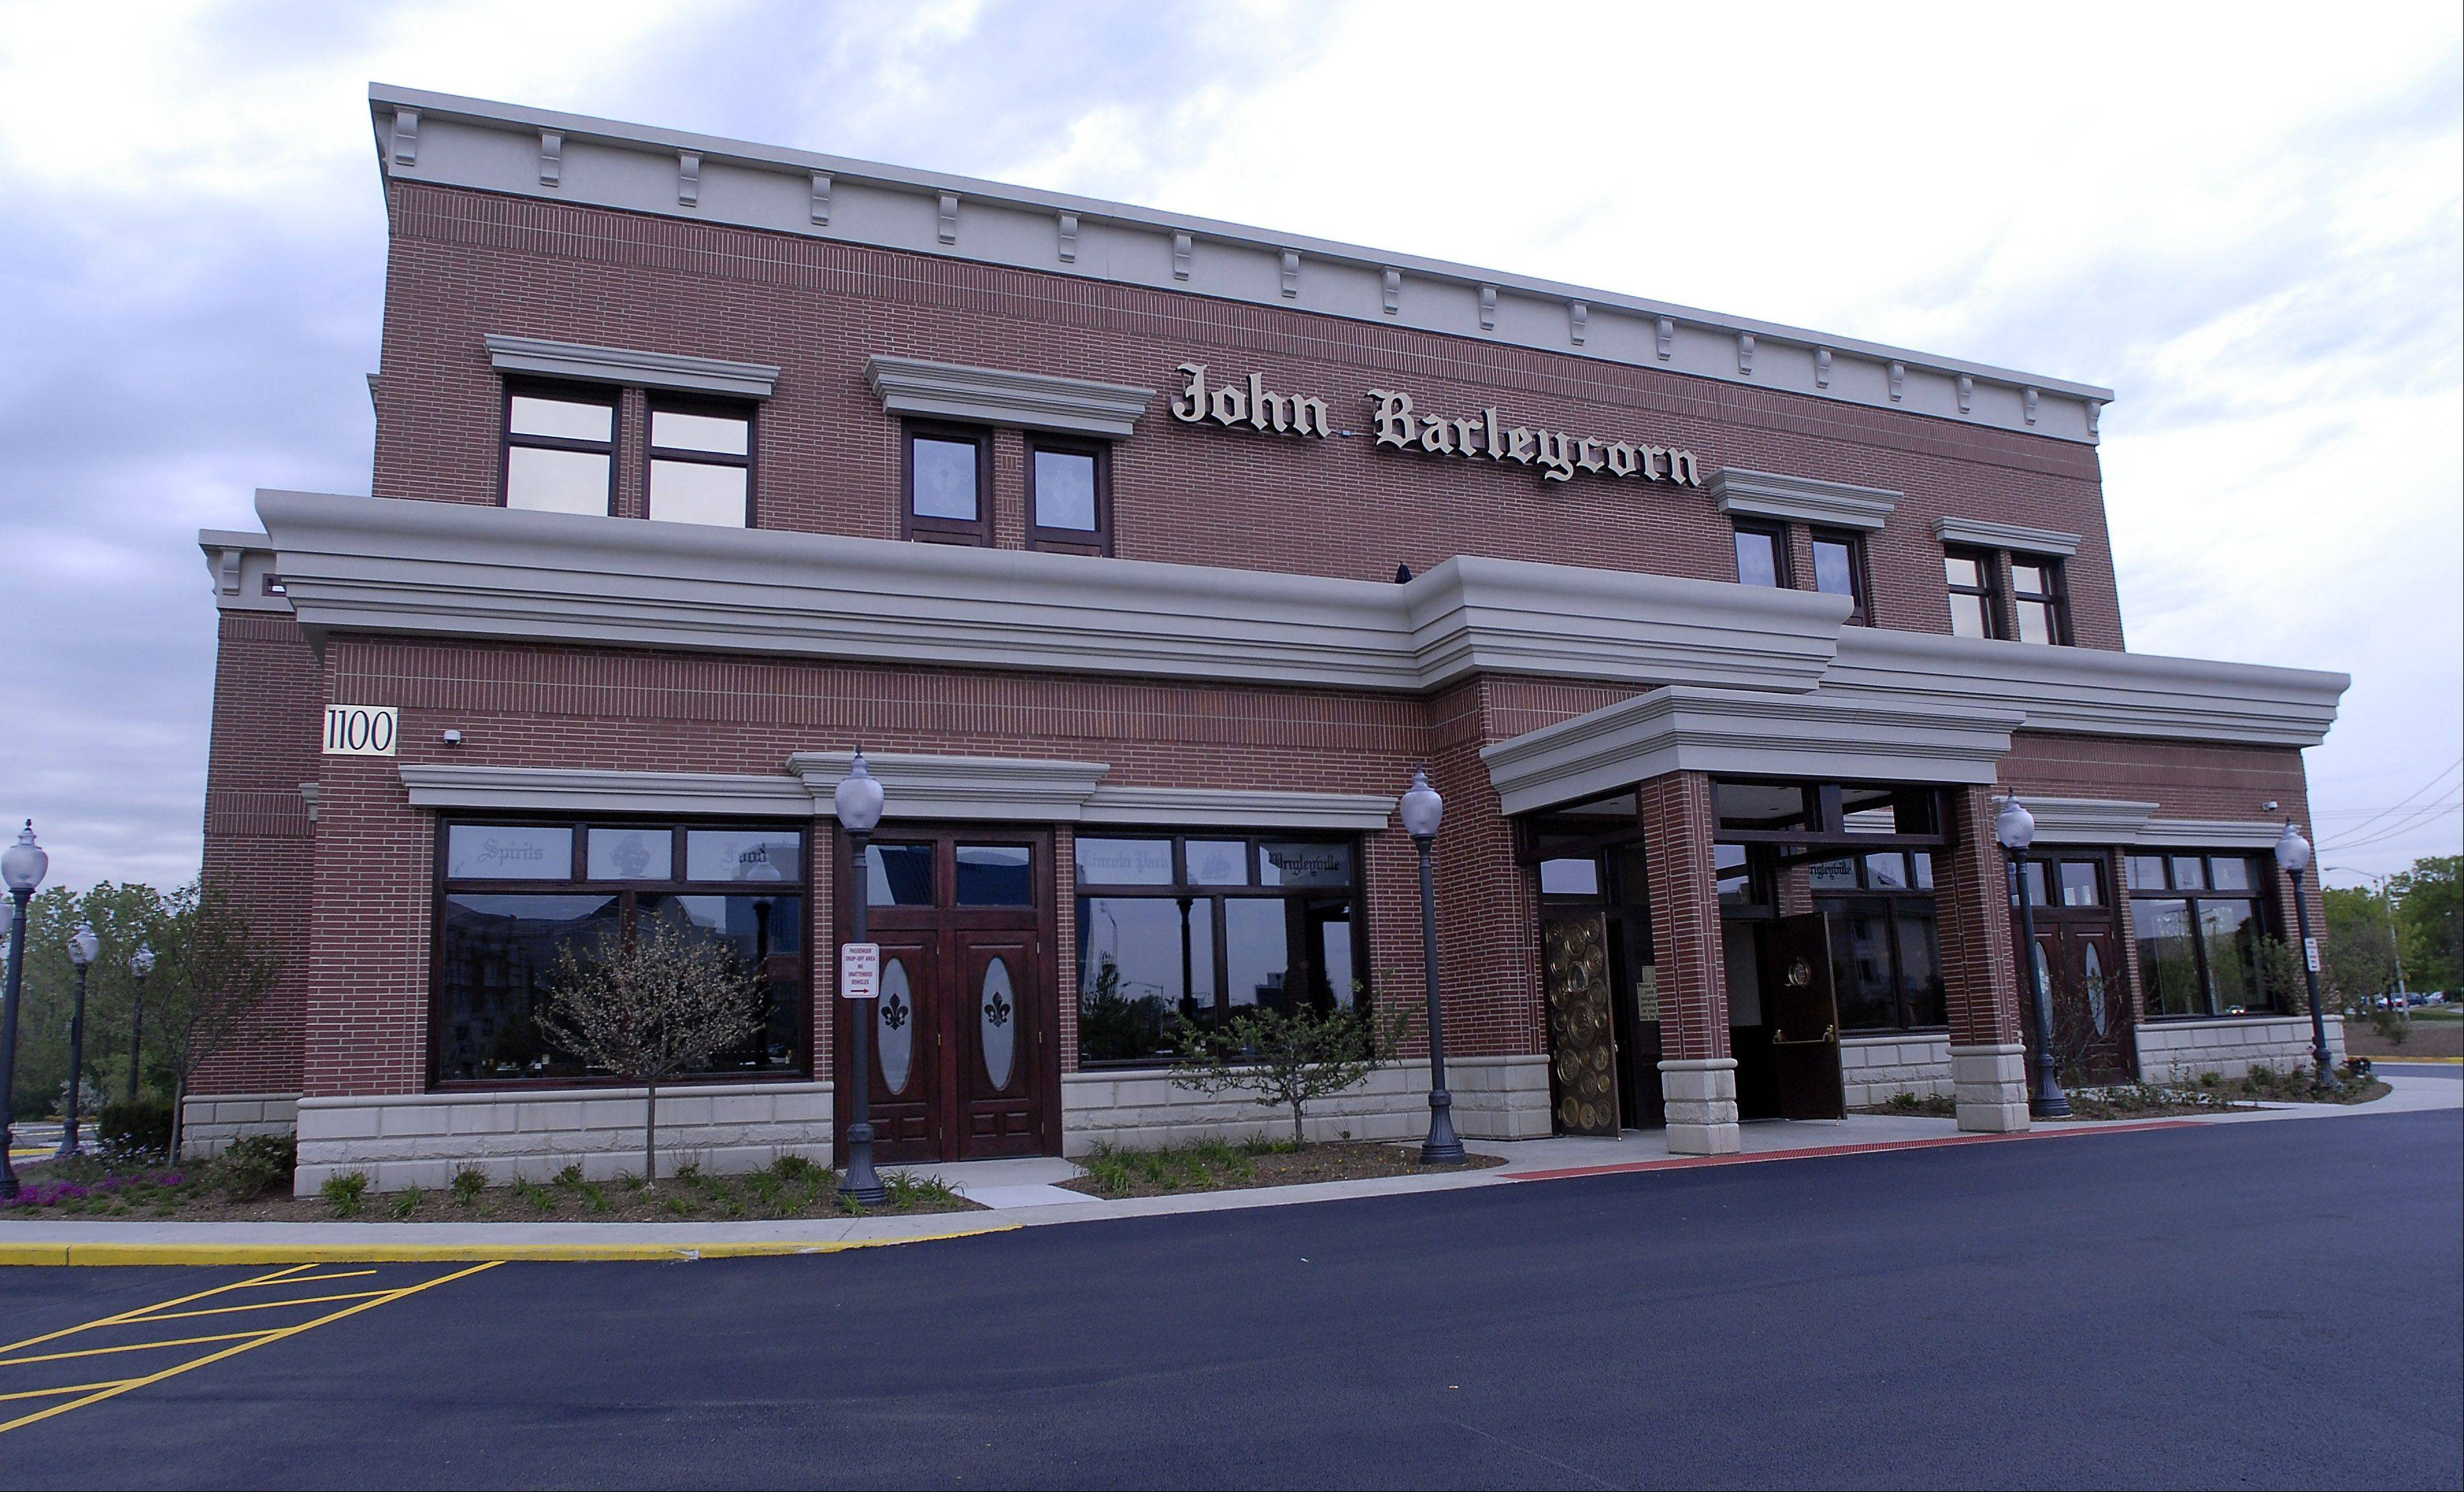 Schaumburg�s John Barleycorn restaurant is ceasing its day-to-day operations, but will remain open exclusively as a venue for private parties and special events, its owner announced Tuesday. The restaurant opened at 1100 American Lane in 2008.